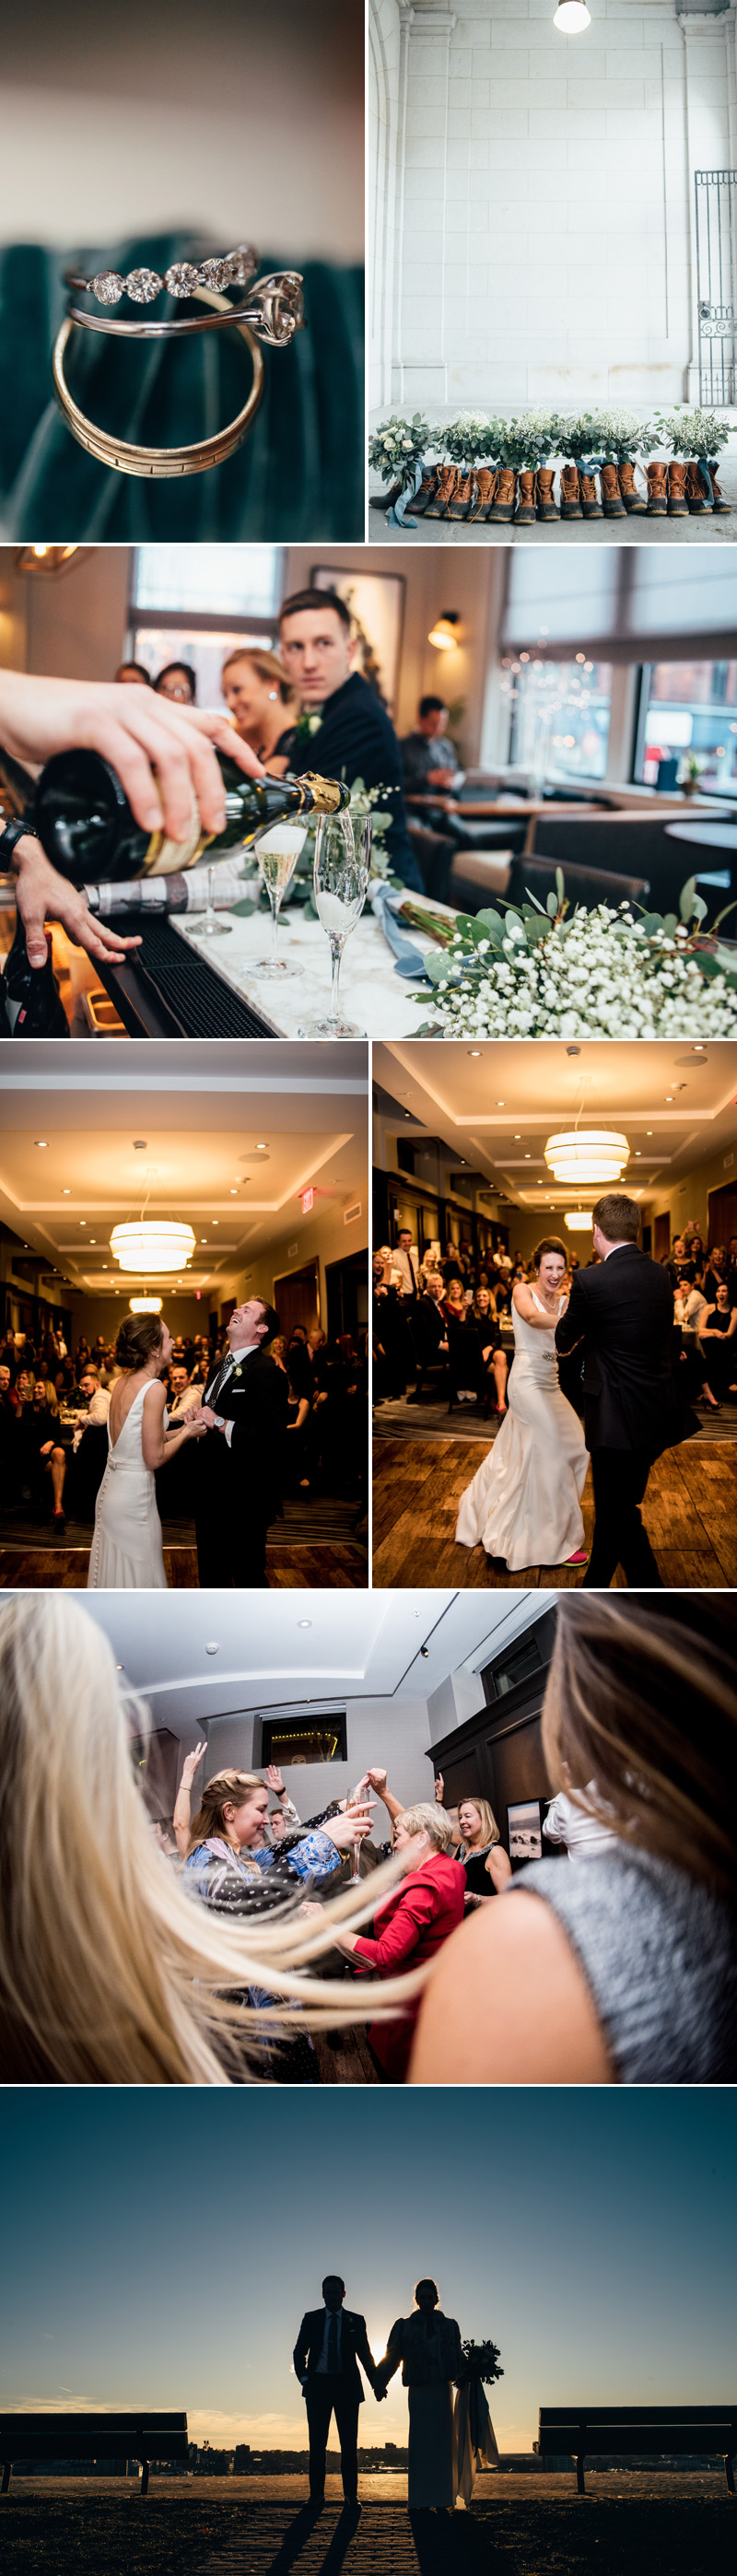 03-portland-winter-wedding.jpg